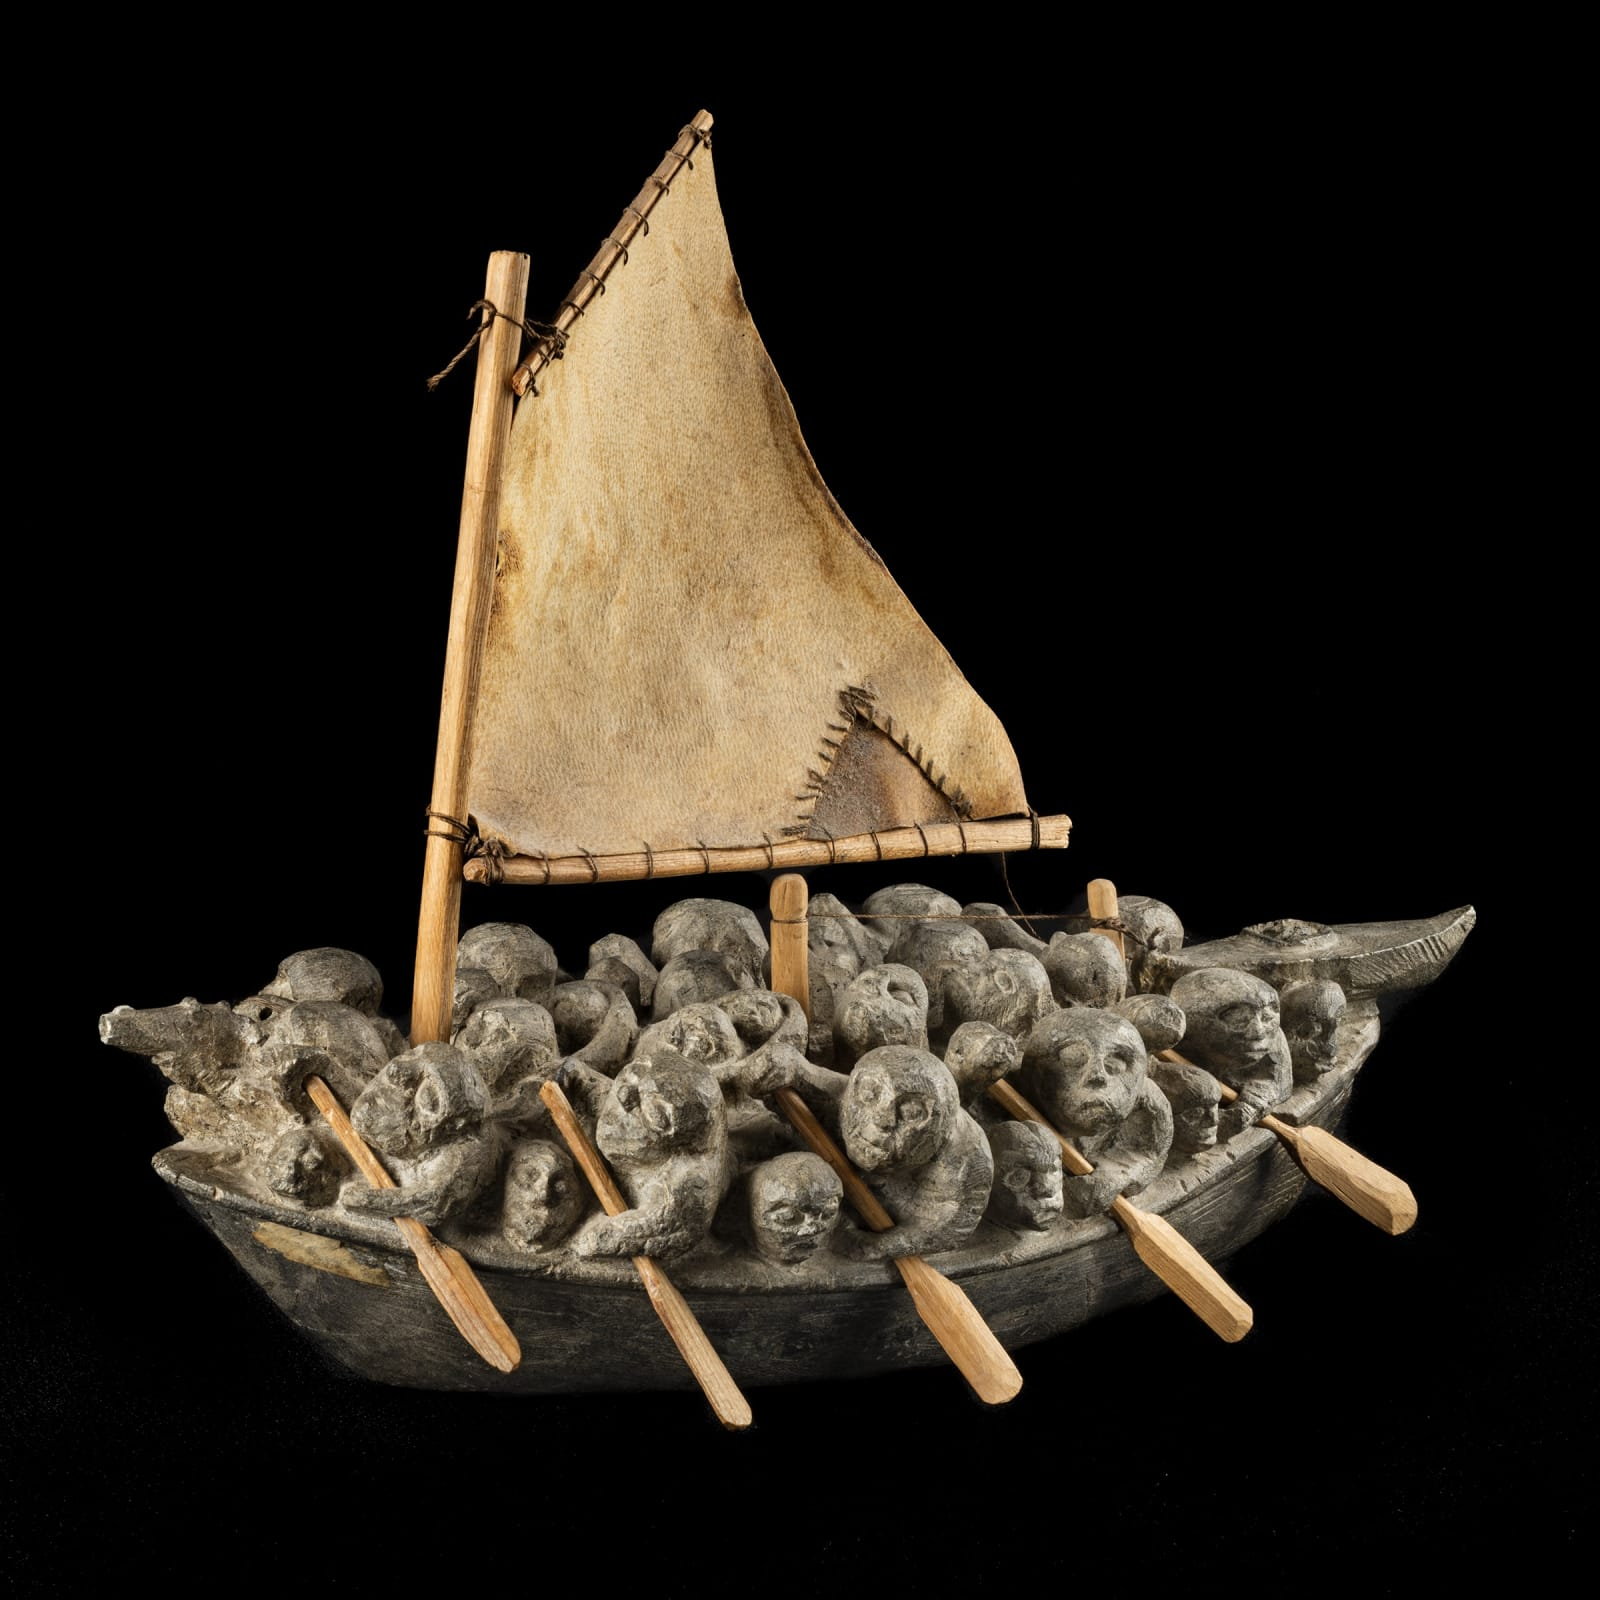 JOE TALIRUNILI (1893-1976) PUVIRNITUQ (POVUNGNITUK) Migration Boat, early-mid 1970s ESTIMATE: $150,000 — $250,000 PRICE REALIZED: $408,000 A world record price for a work of Inuit art sold at auction.